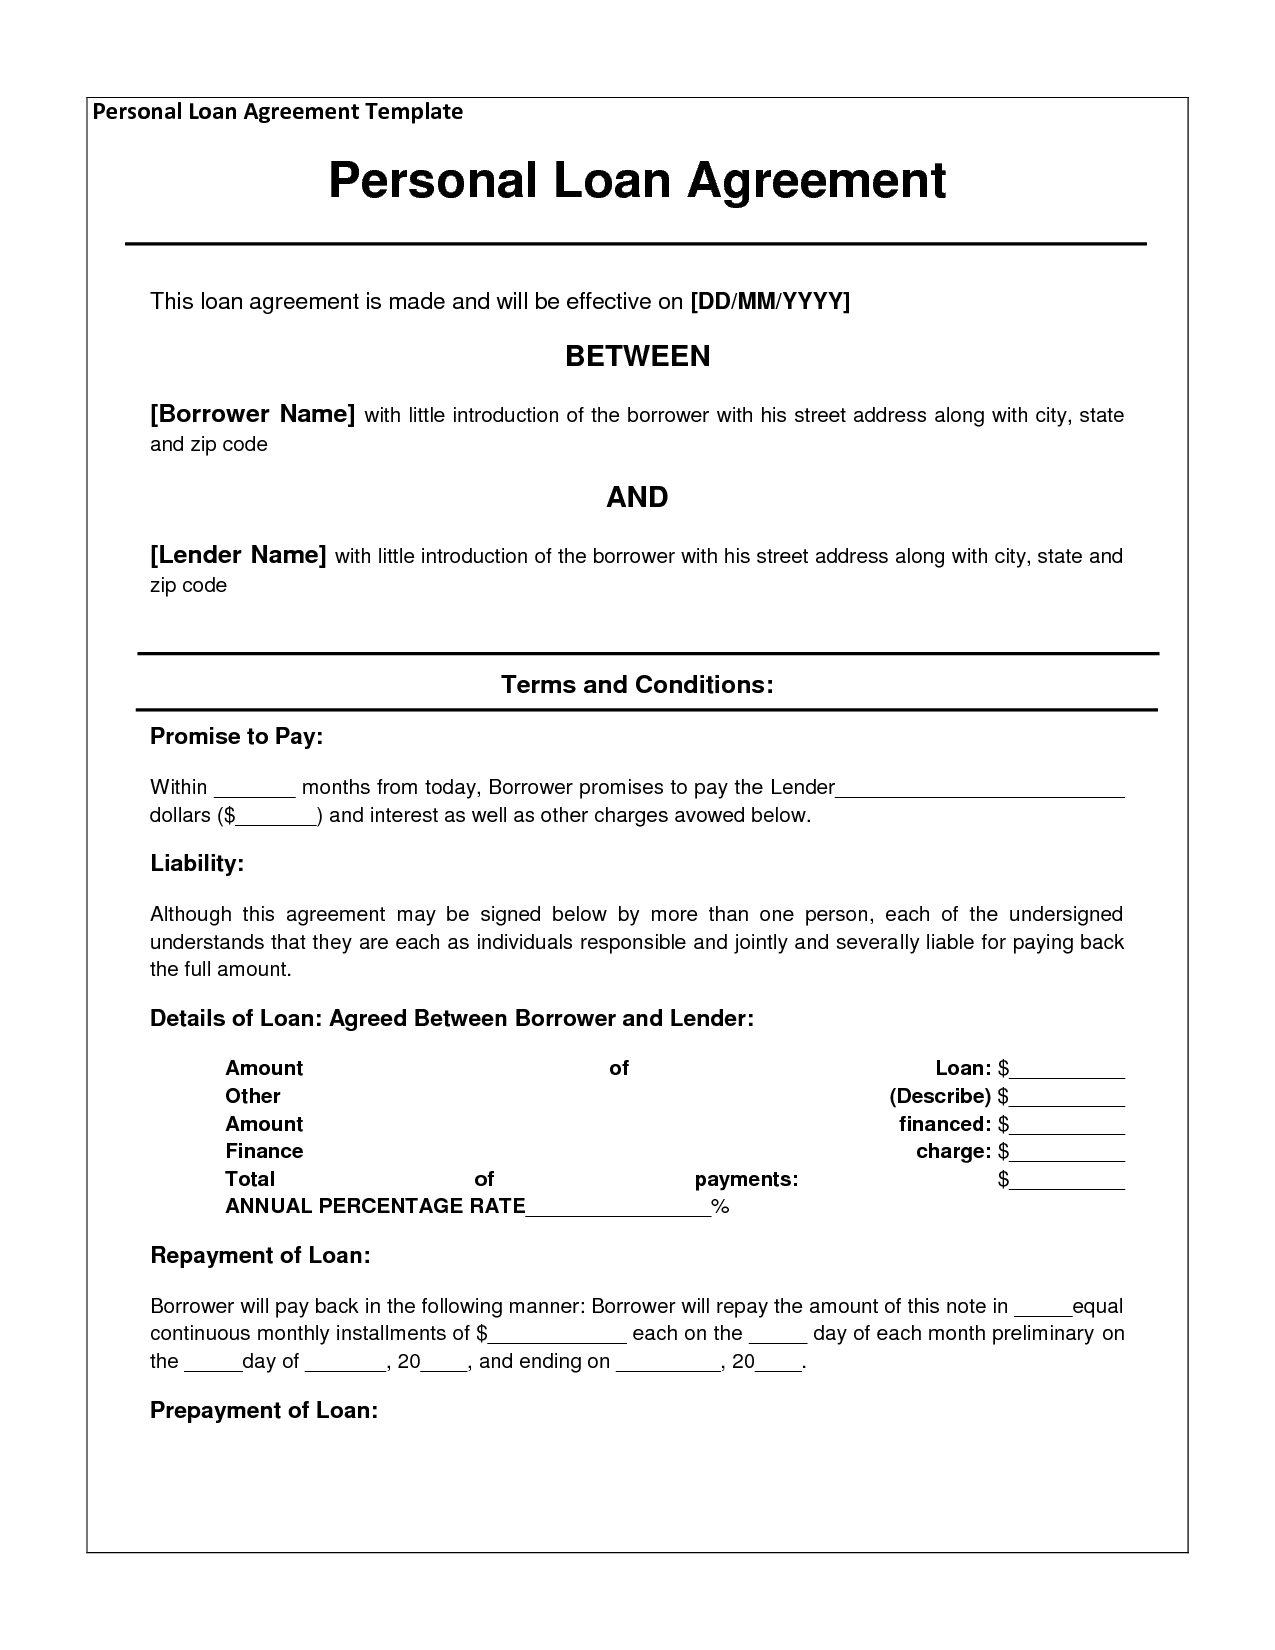 Free Personal Loan Agreement Form Template 1000 Roved In 2 Private